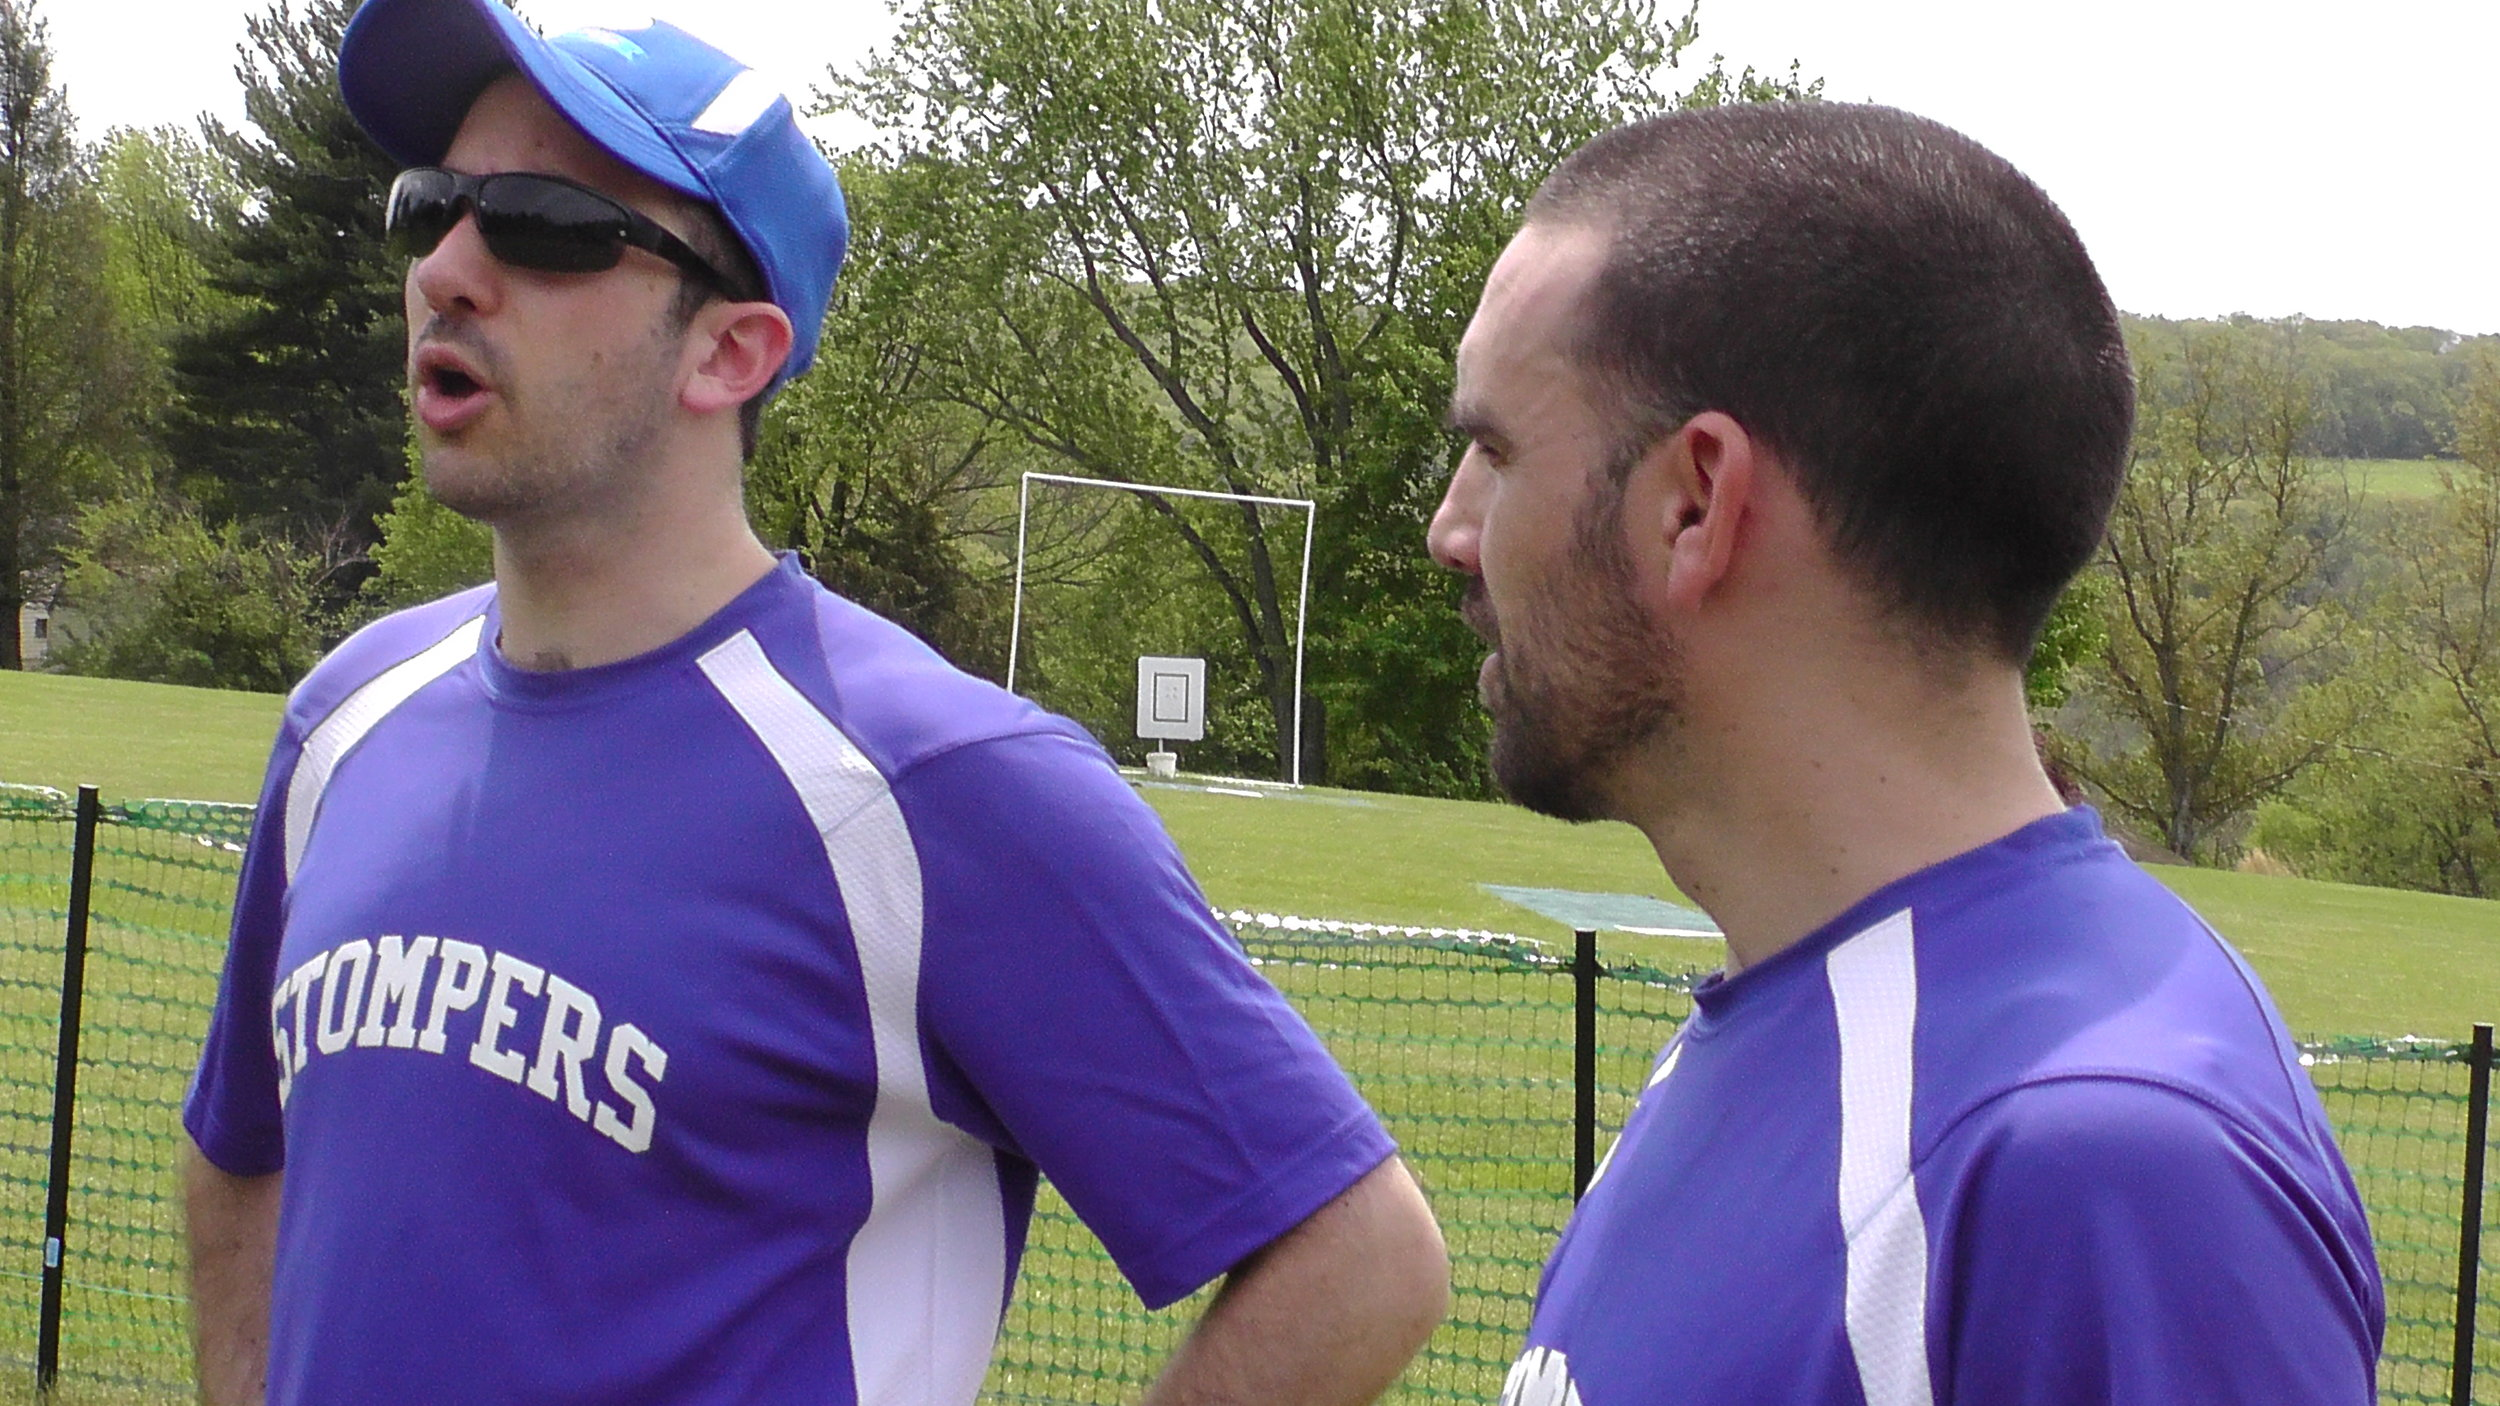 Dan Isenberg and Nick Schaefer chat in between games at a recent tournament.